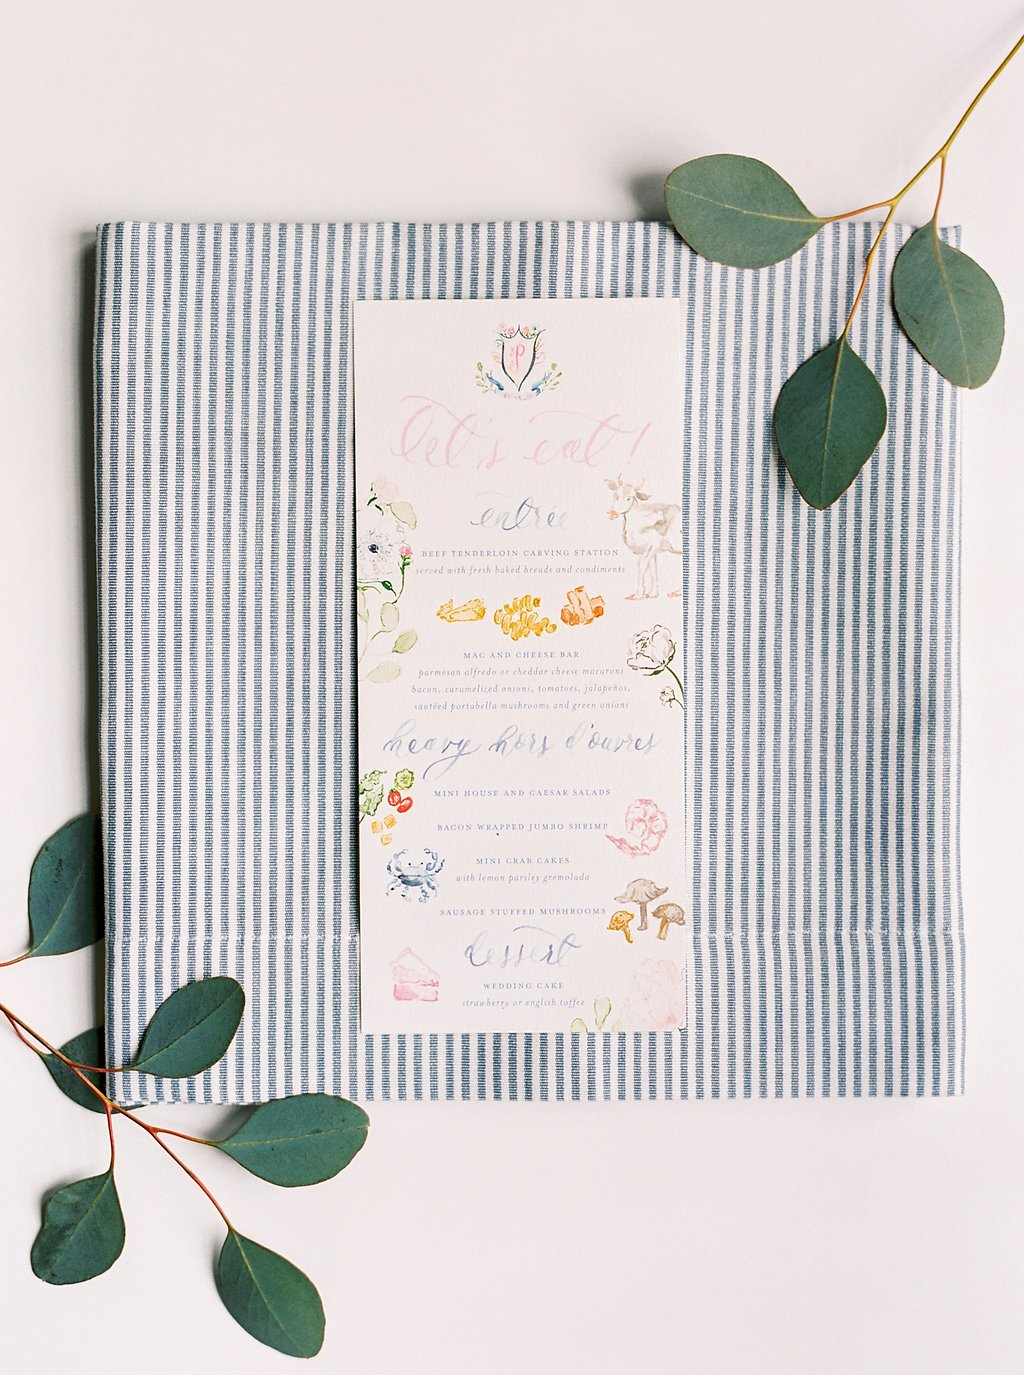 Custom Watercolor Illustrated Wedding Menu with Brush Calligraphy, Painted Illustrated Food Icons, and a Custom Watercolor Wedding Crest | Blush and Navy Wedding with Fuchsia, French Blue and Gold Accents | Simply Jessica Marie's Southern Wedding at Gettysvue Golf Course and Country Club in Knoxville Tennessee | Photo by Perry Vaile Photography